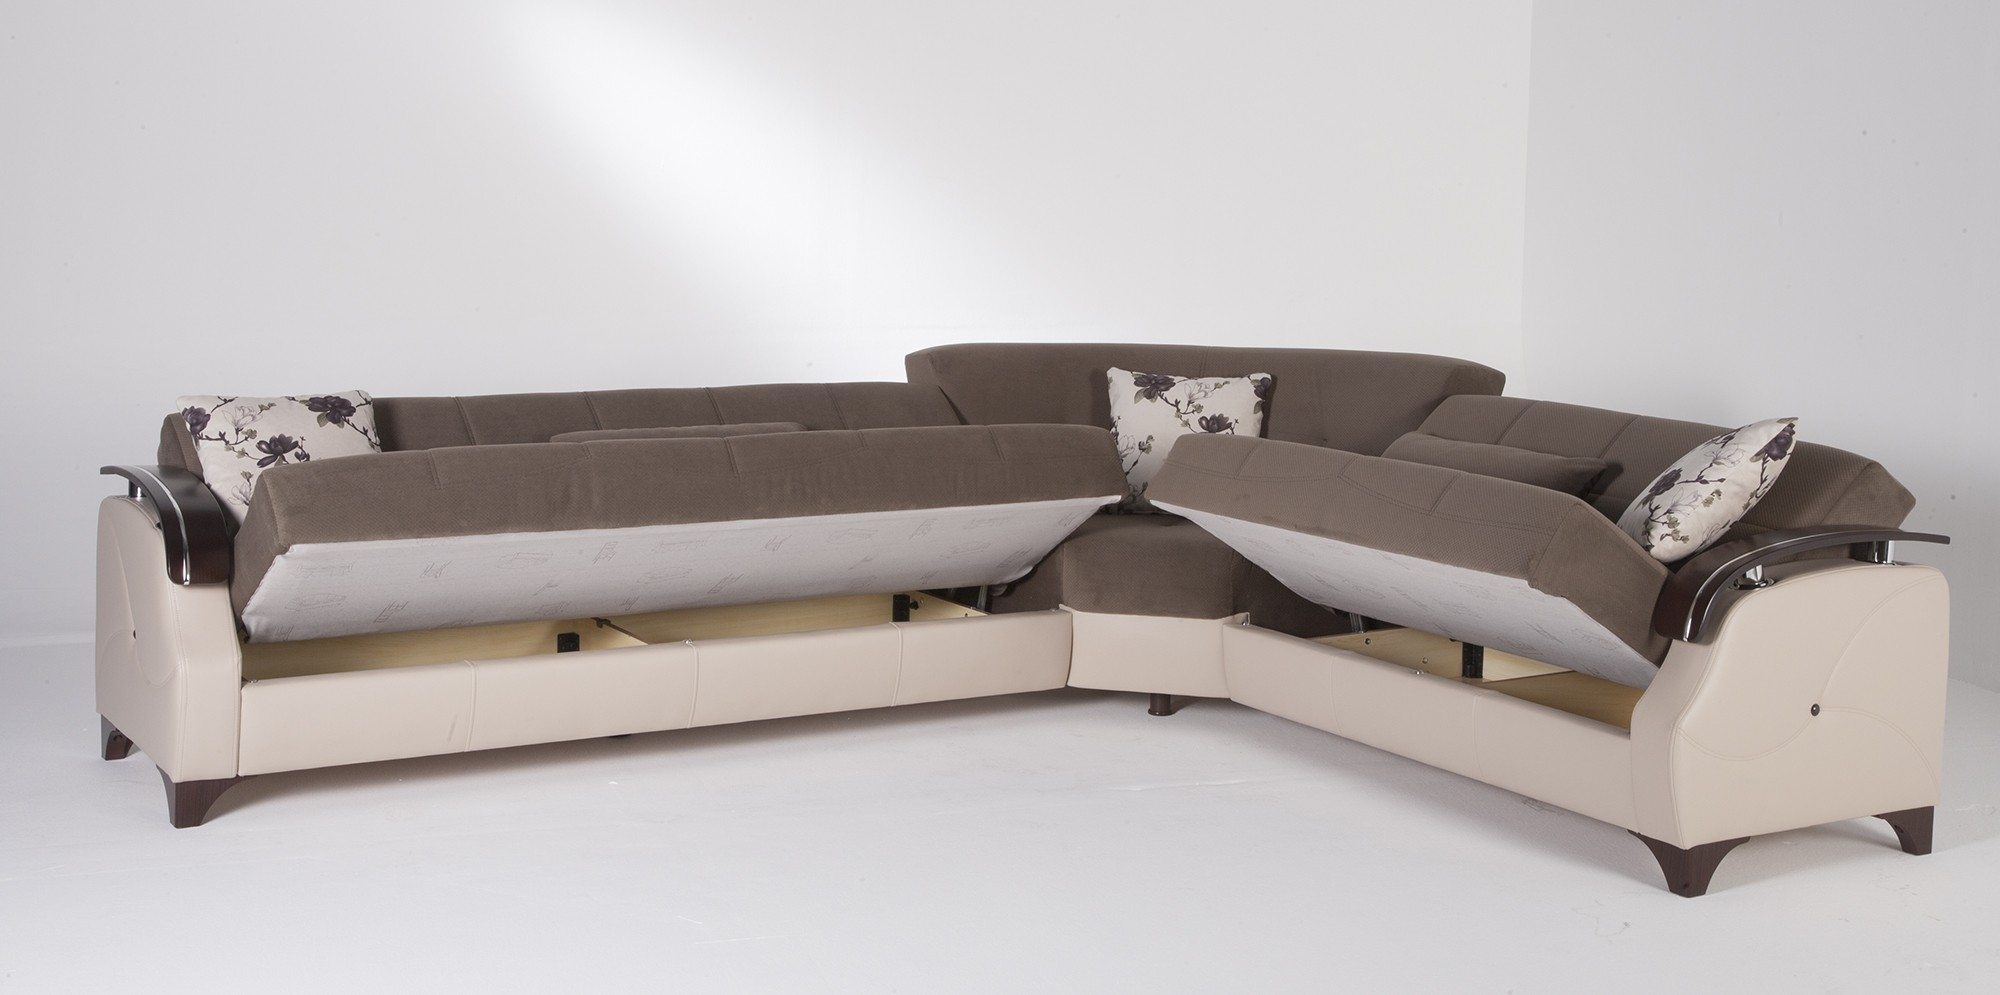 Sectional Sofa Design: Cheap Sectional Sofas Furniture Design Stock With Regard To Sectional Sofas In Stock (View 2 of 10)